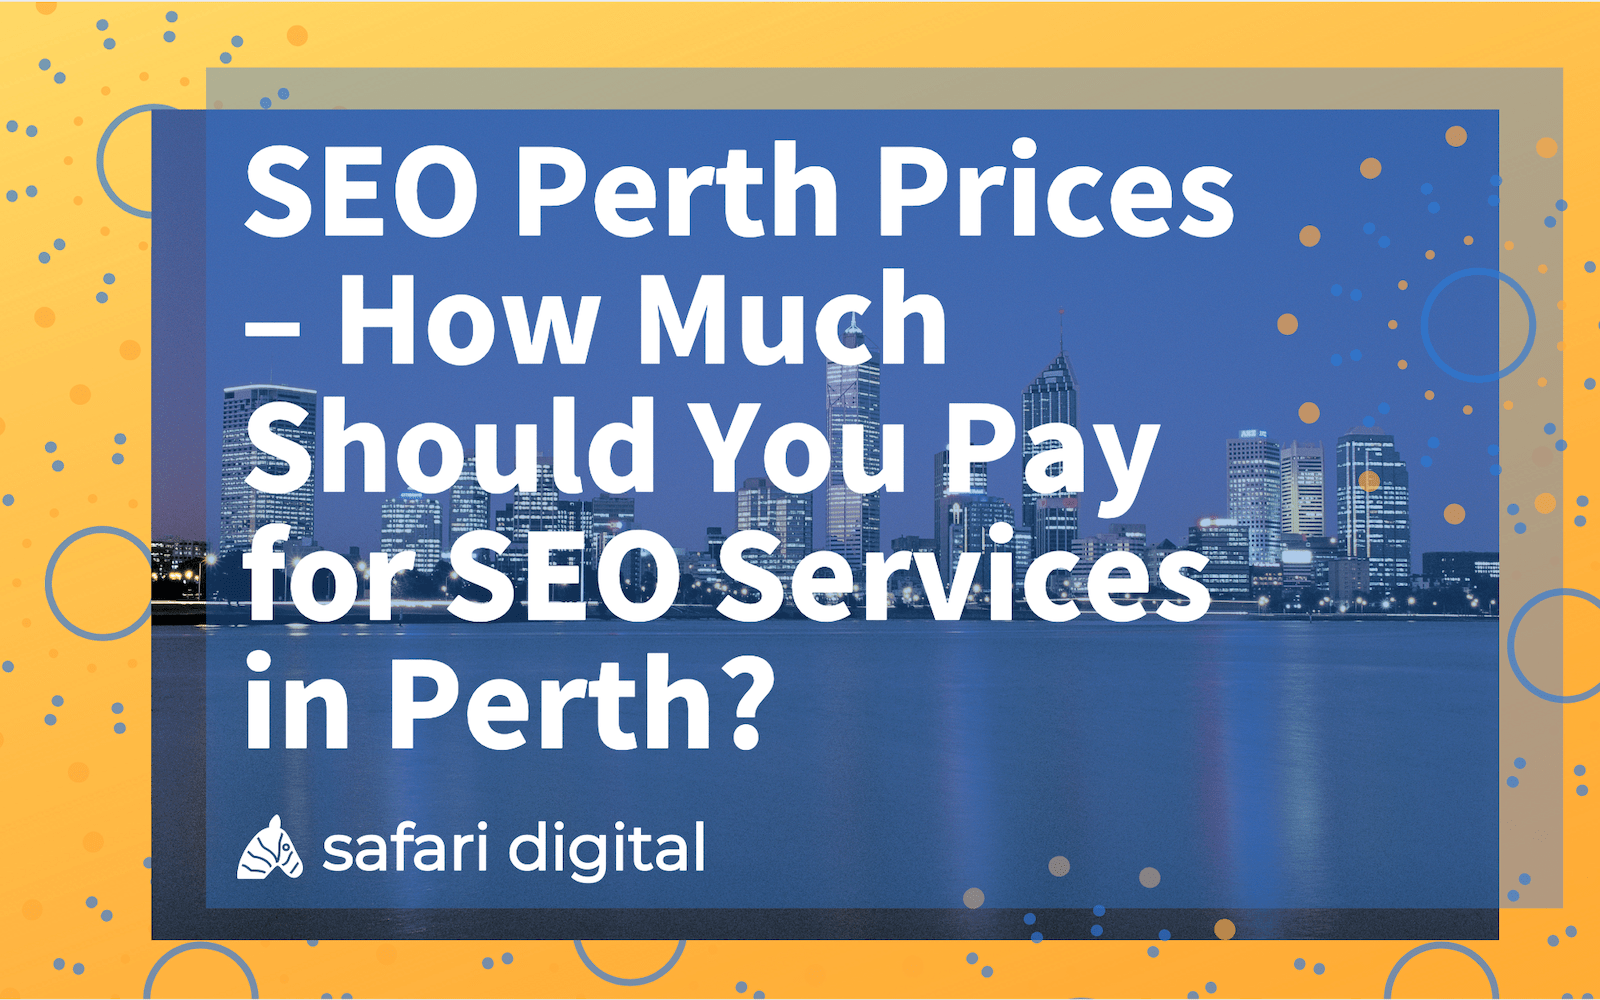 seo perth prices small cover image